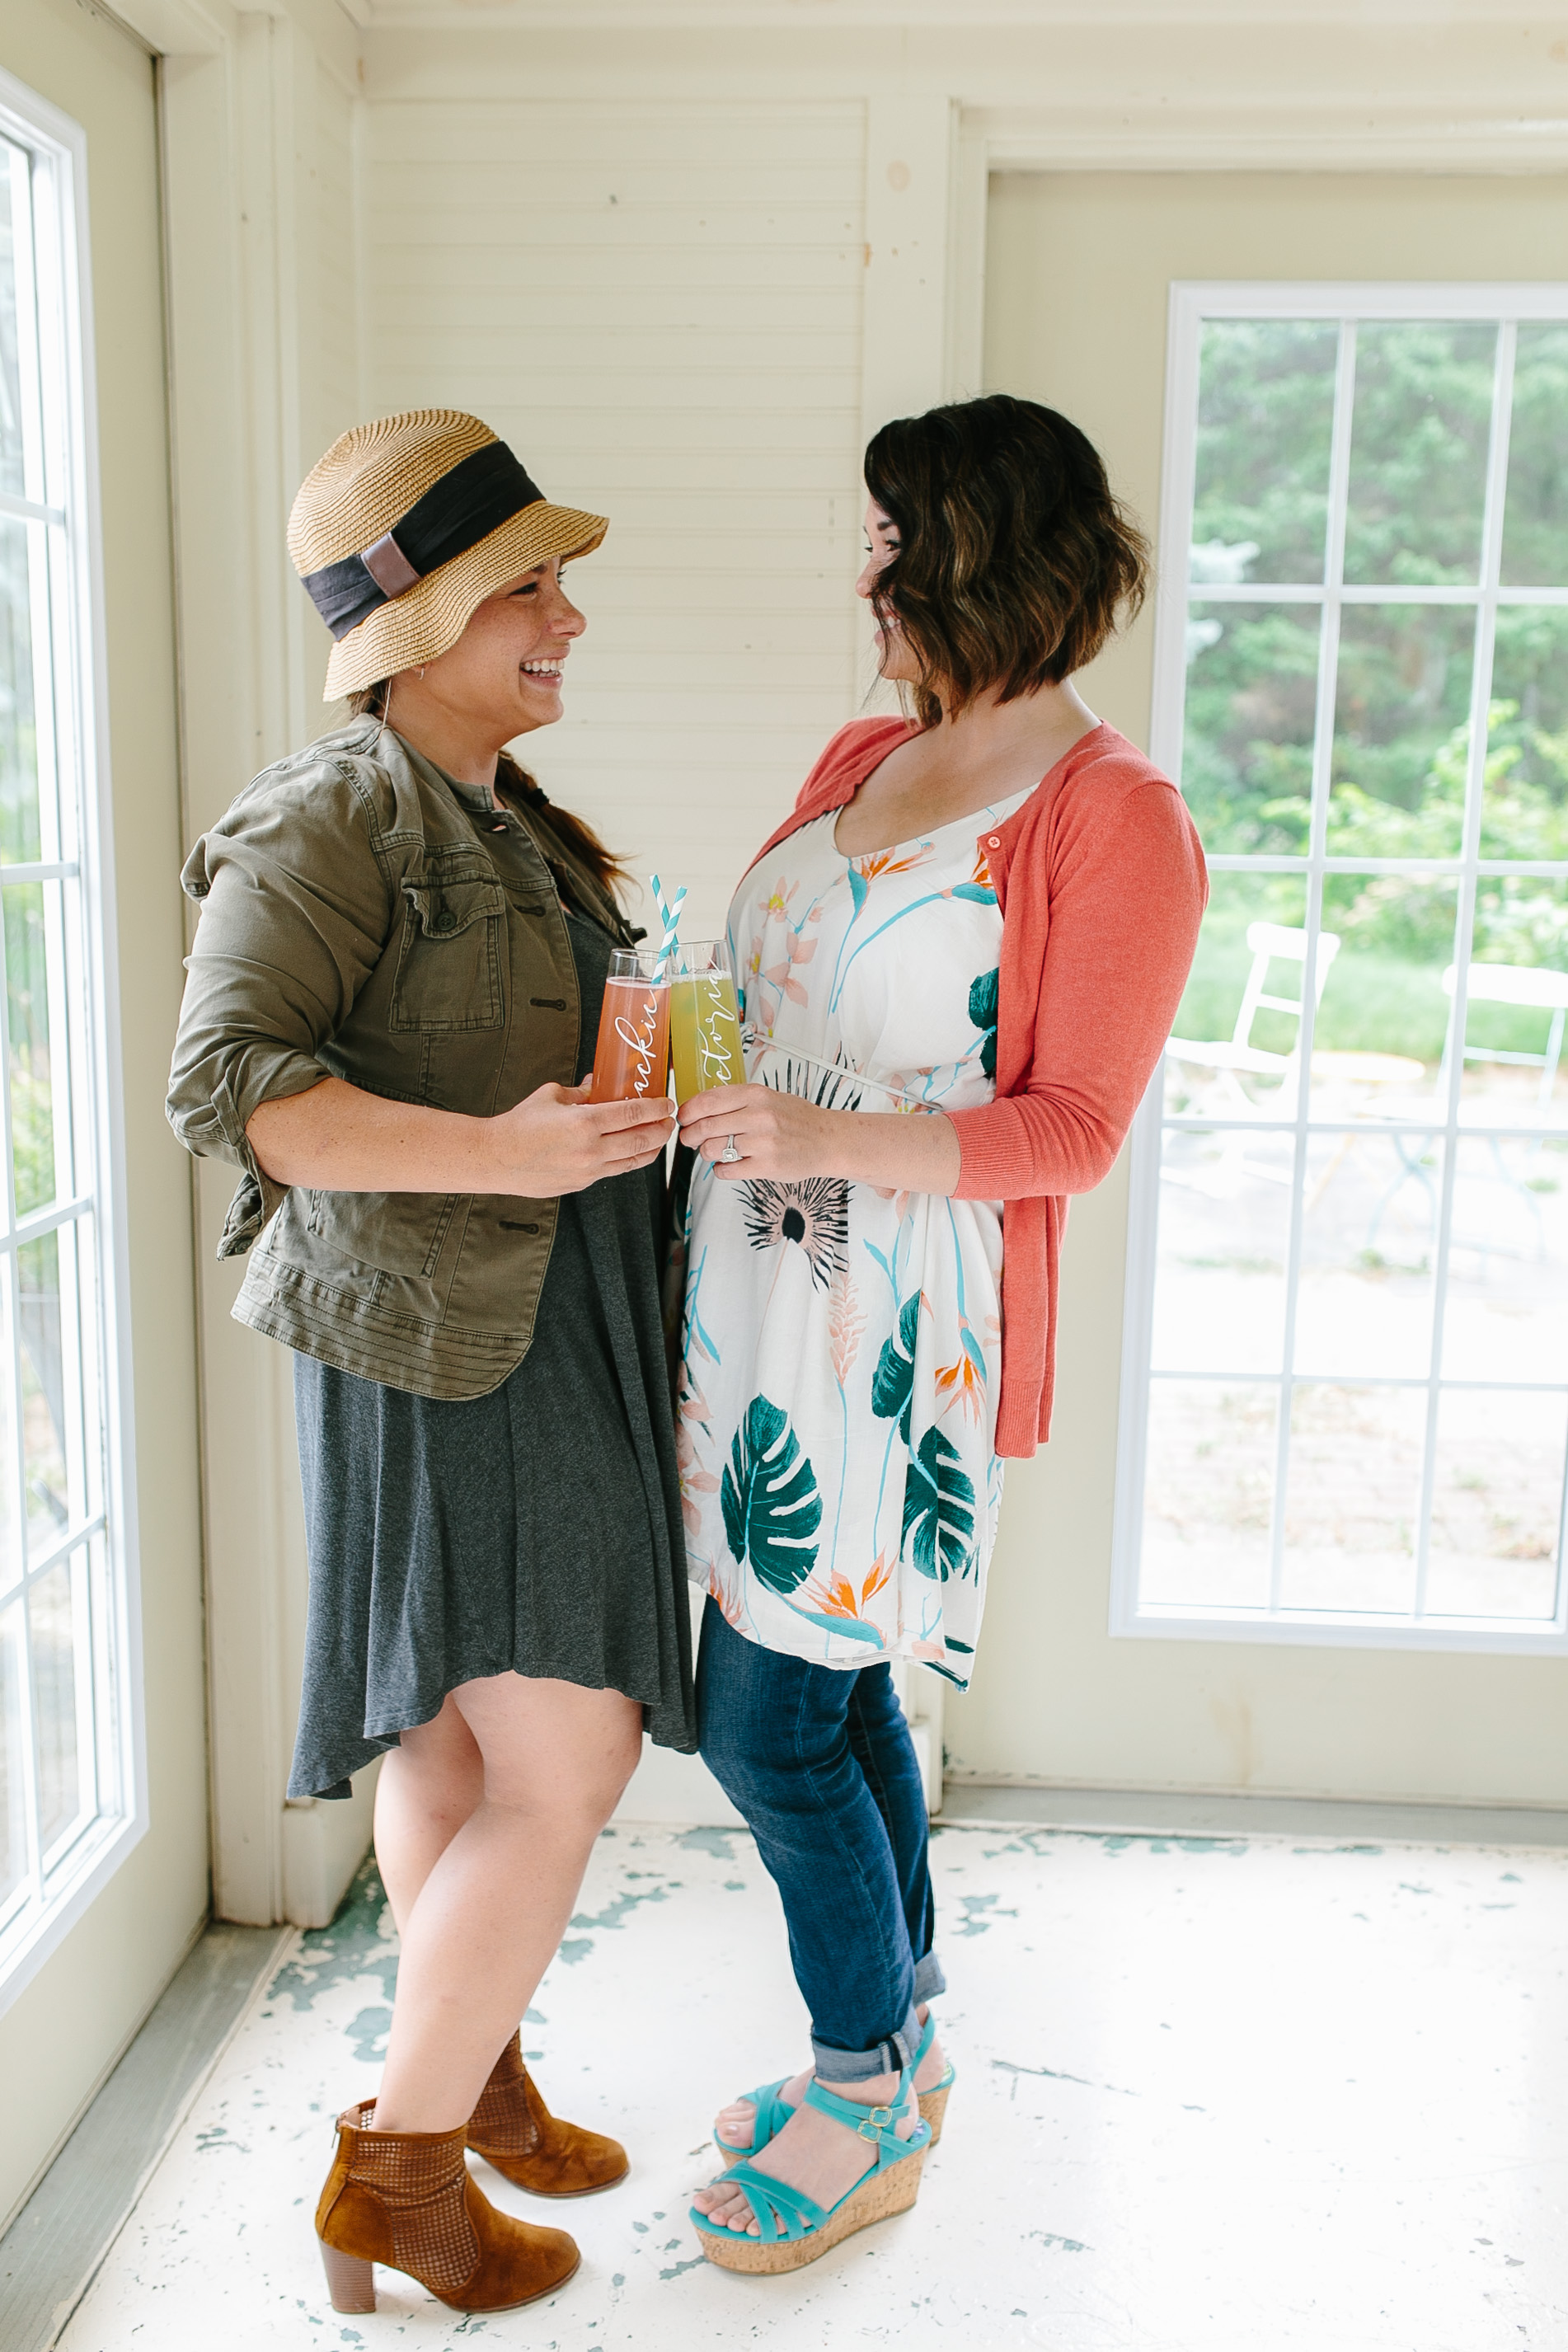 Workshop collaboration with Blossoms Flower House  Photography by Andrea Naylor Photography